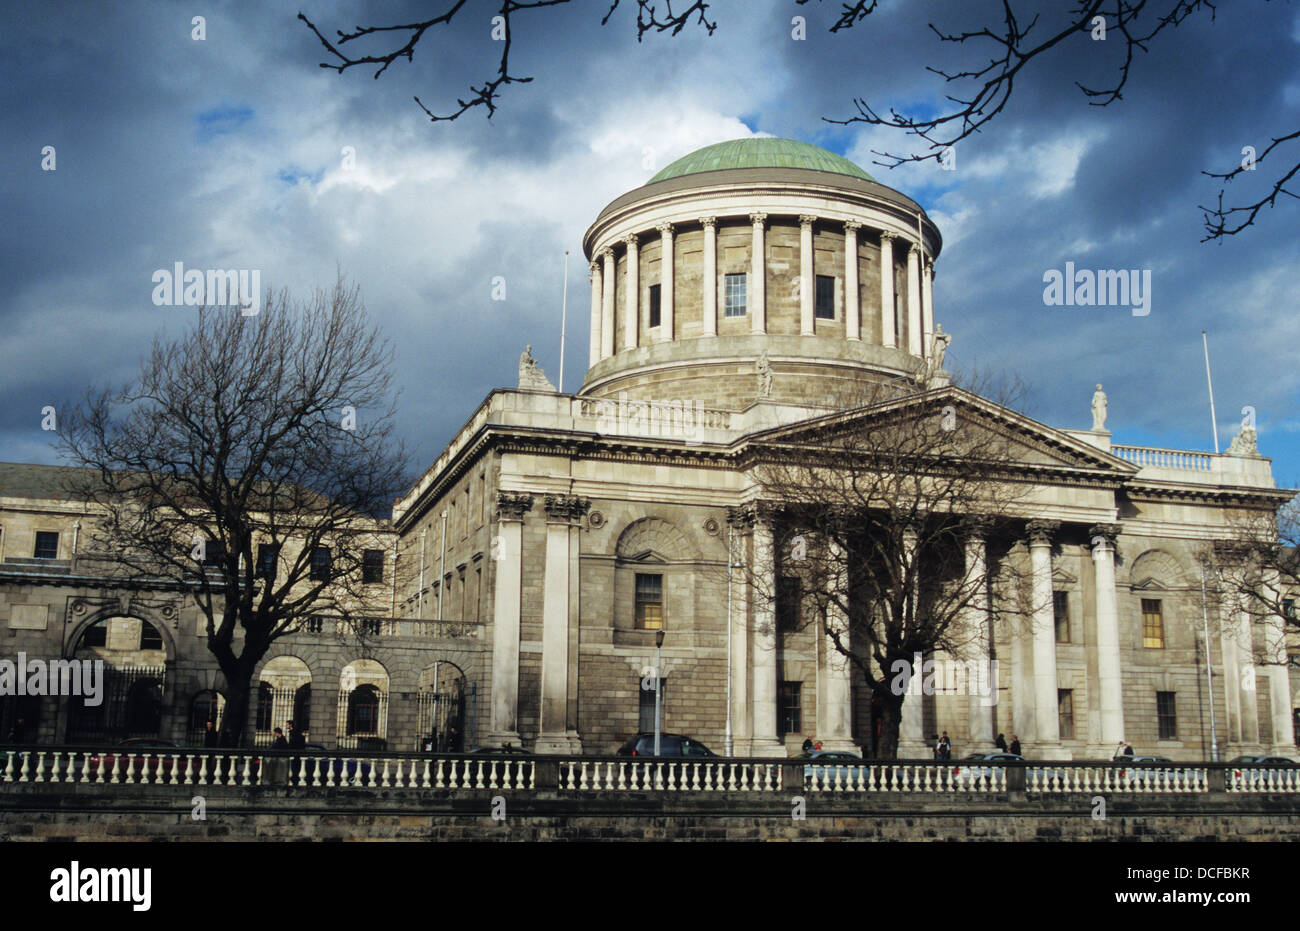 The Four Courts, Inn's Quay, Dublin pictured from across the Liffey at Merchant's Quay - Stock Image